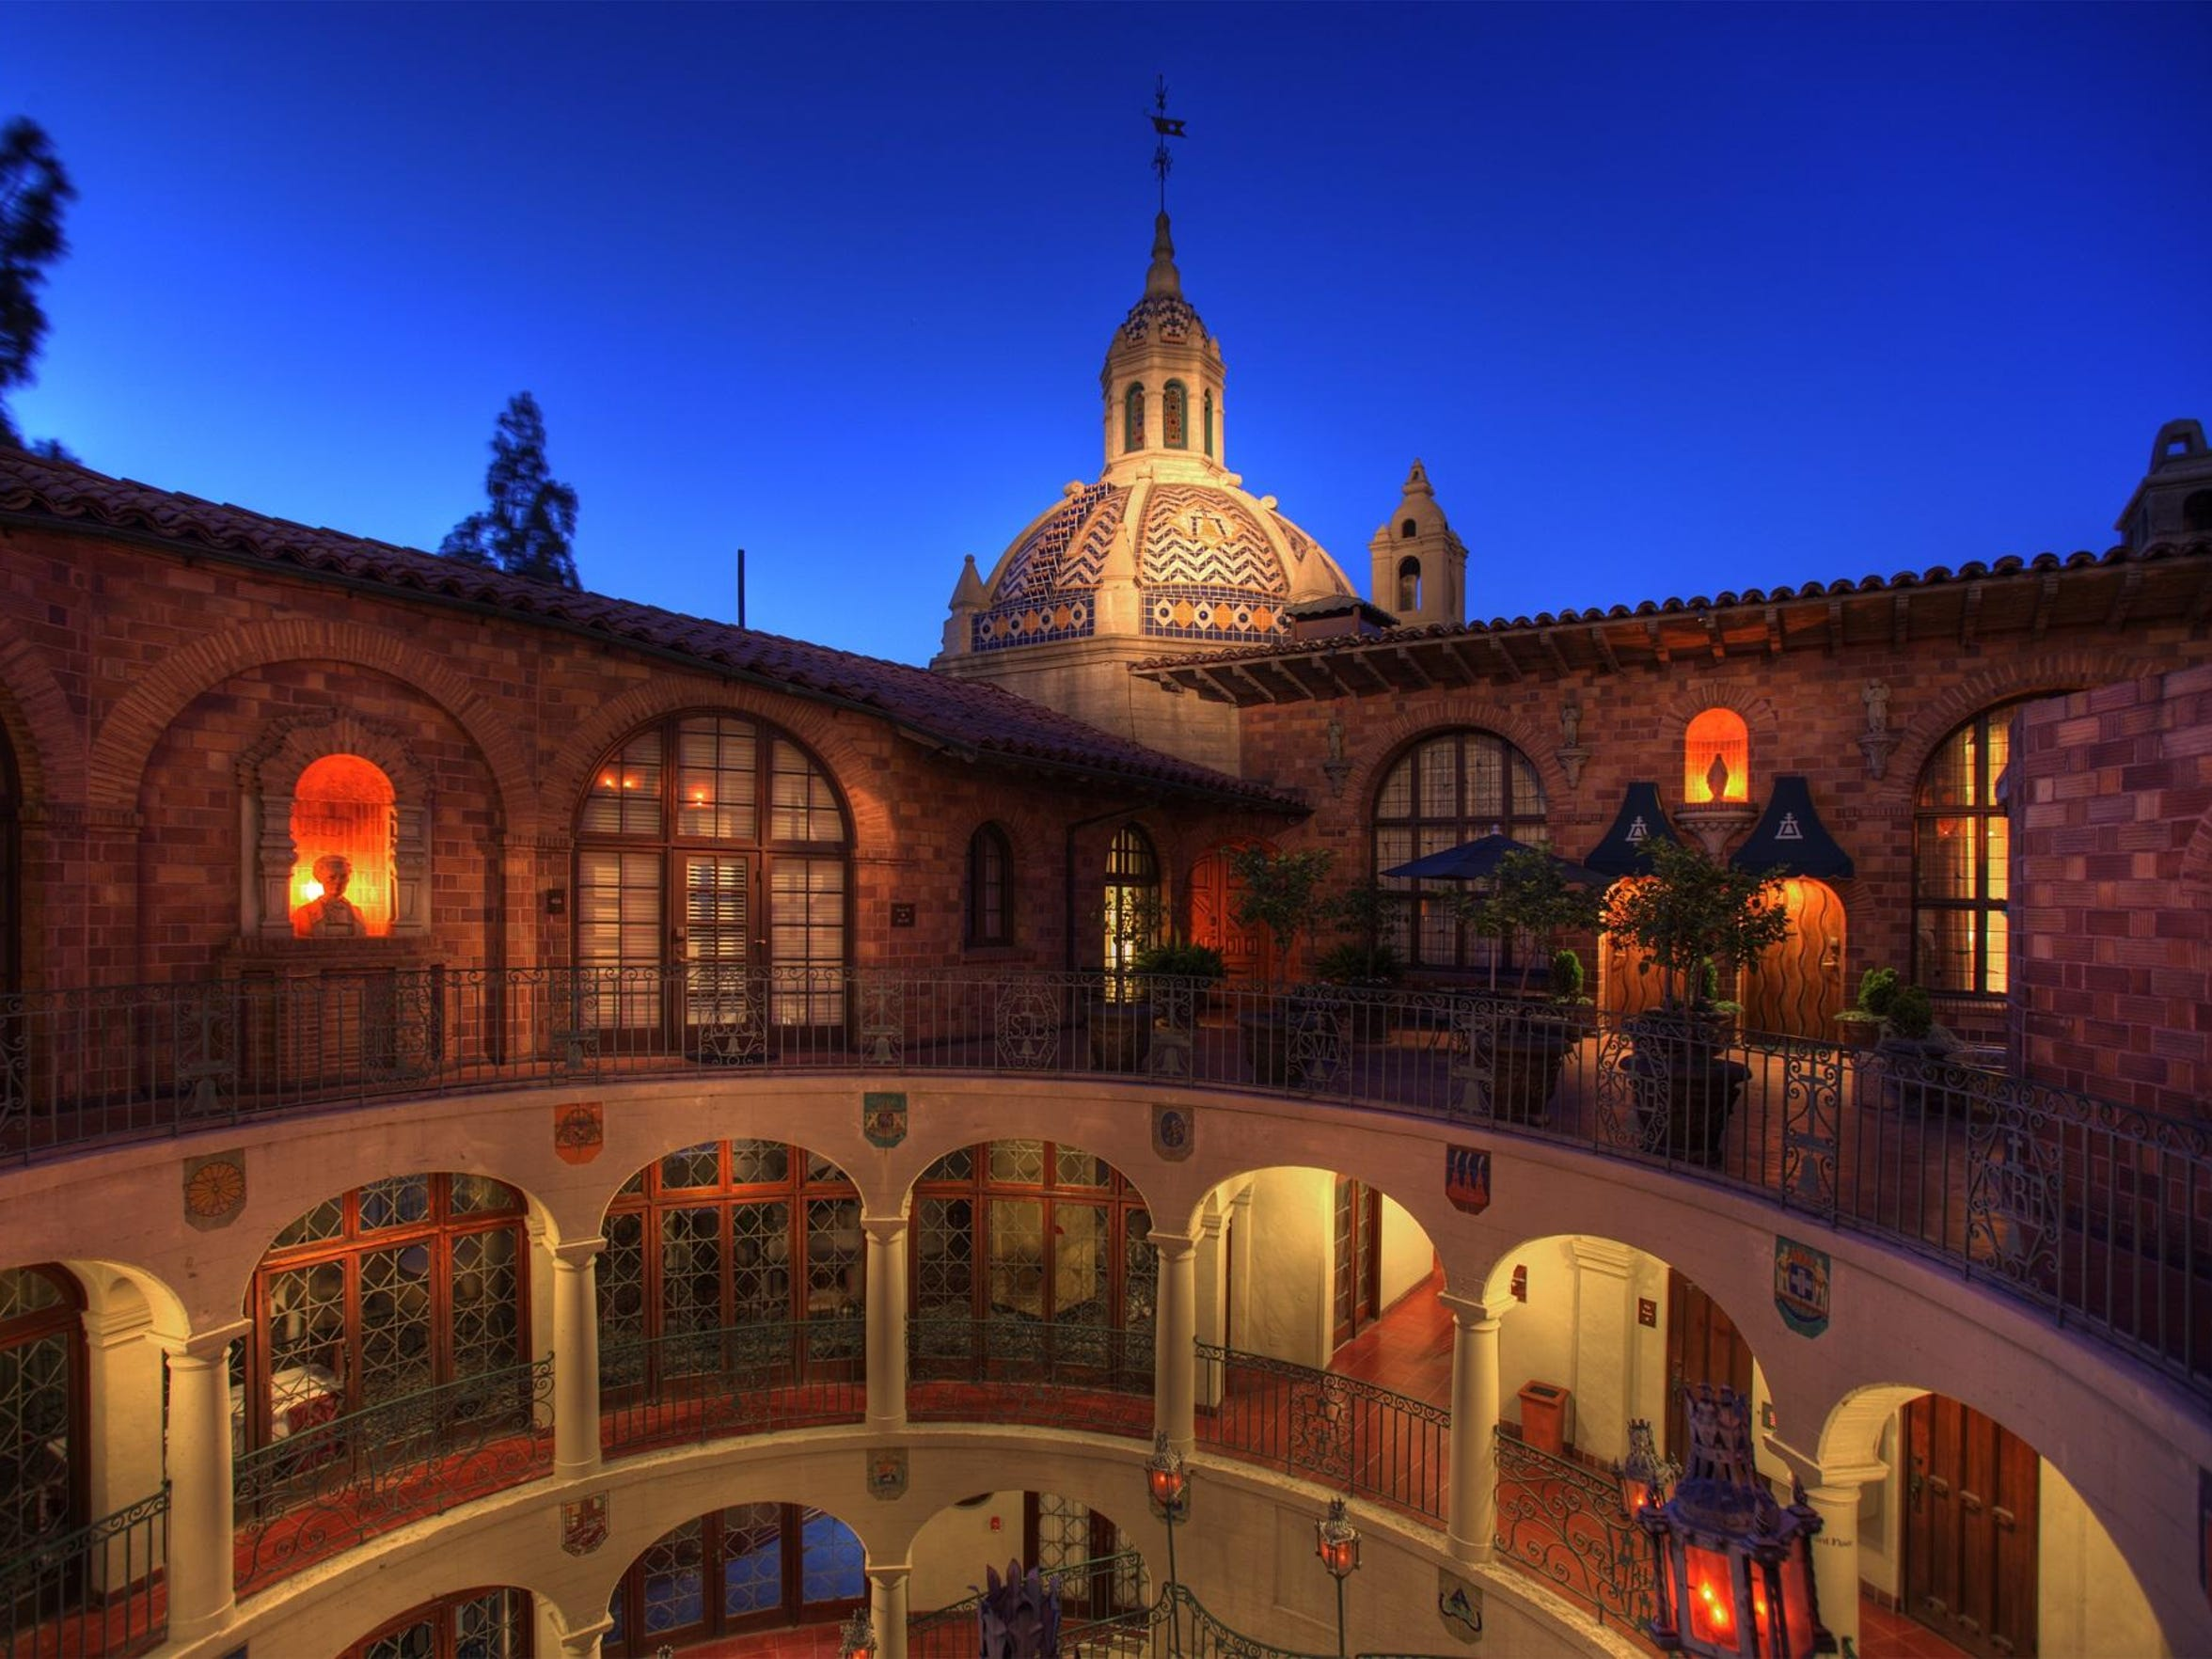 The Mission Inn has been the inspiration for creative personalities throughout its history.